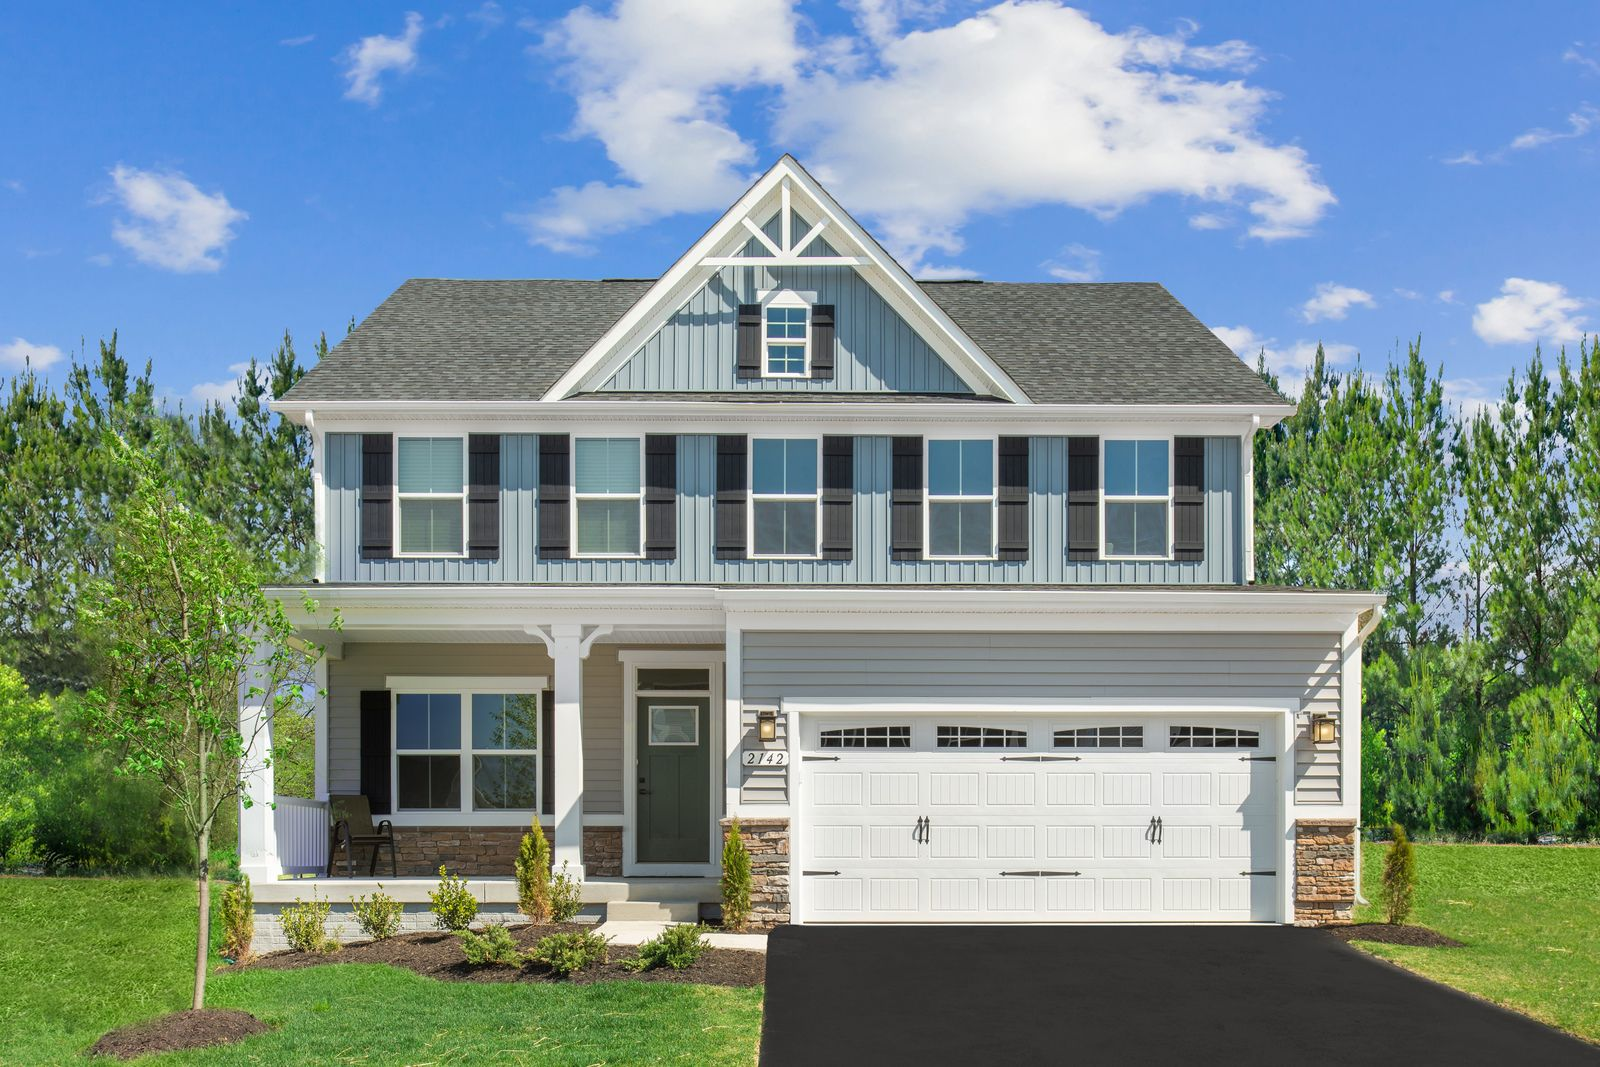 WELCOME TO ESTATES AT WILLOW BROOK:New phase released! The only new homes in a golf course community with up to 4,000 square feet & included finished basements w/ most homes in the heart of the Lehigh Valley.Schedule your visit today!